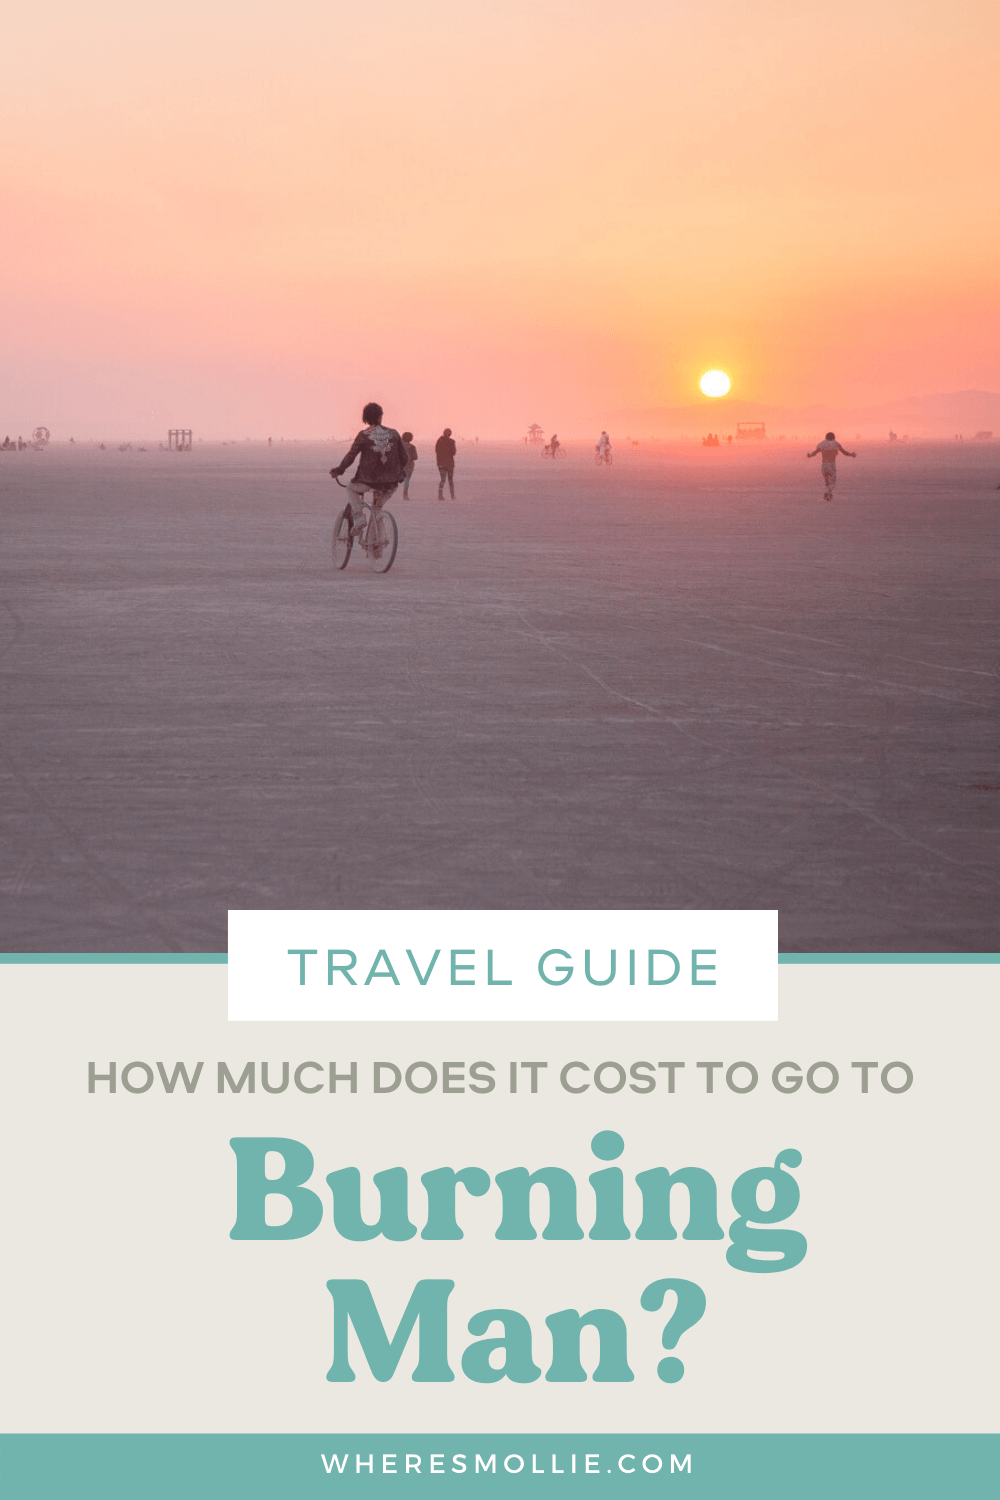 How much does it cost to go to Burning Man? A cost breakdown